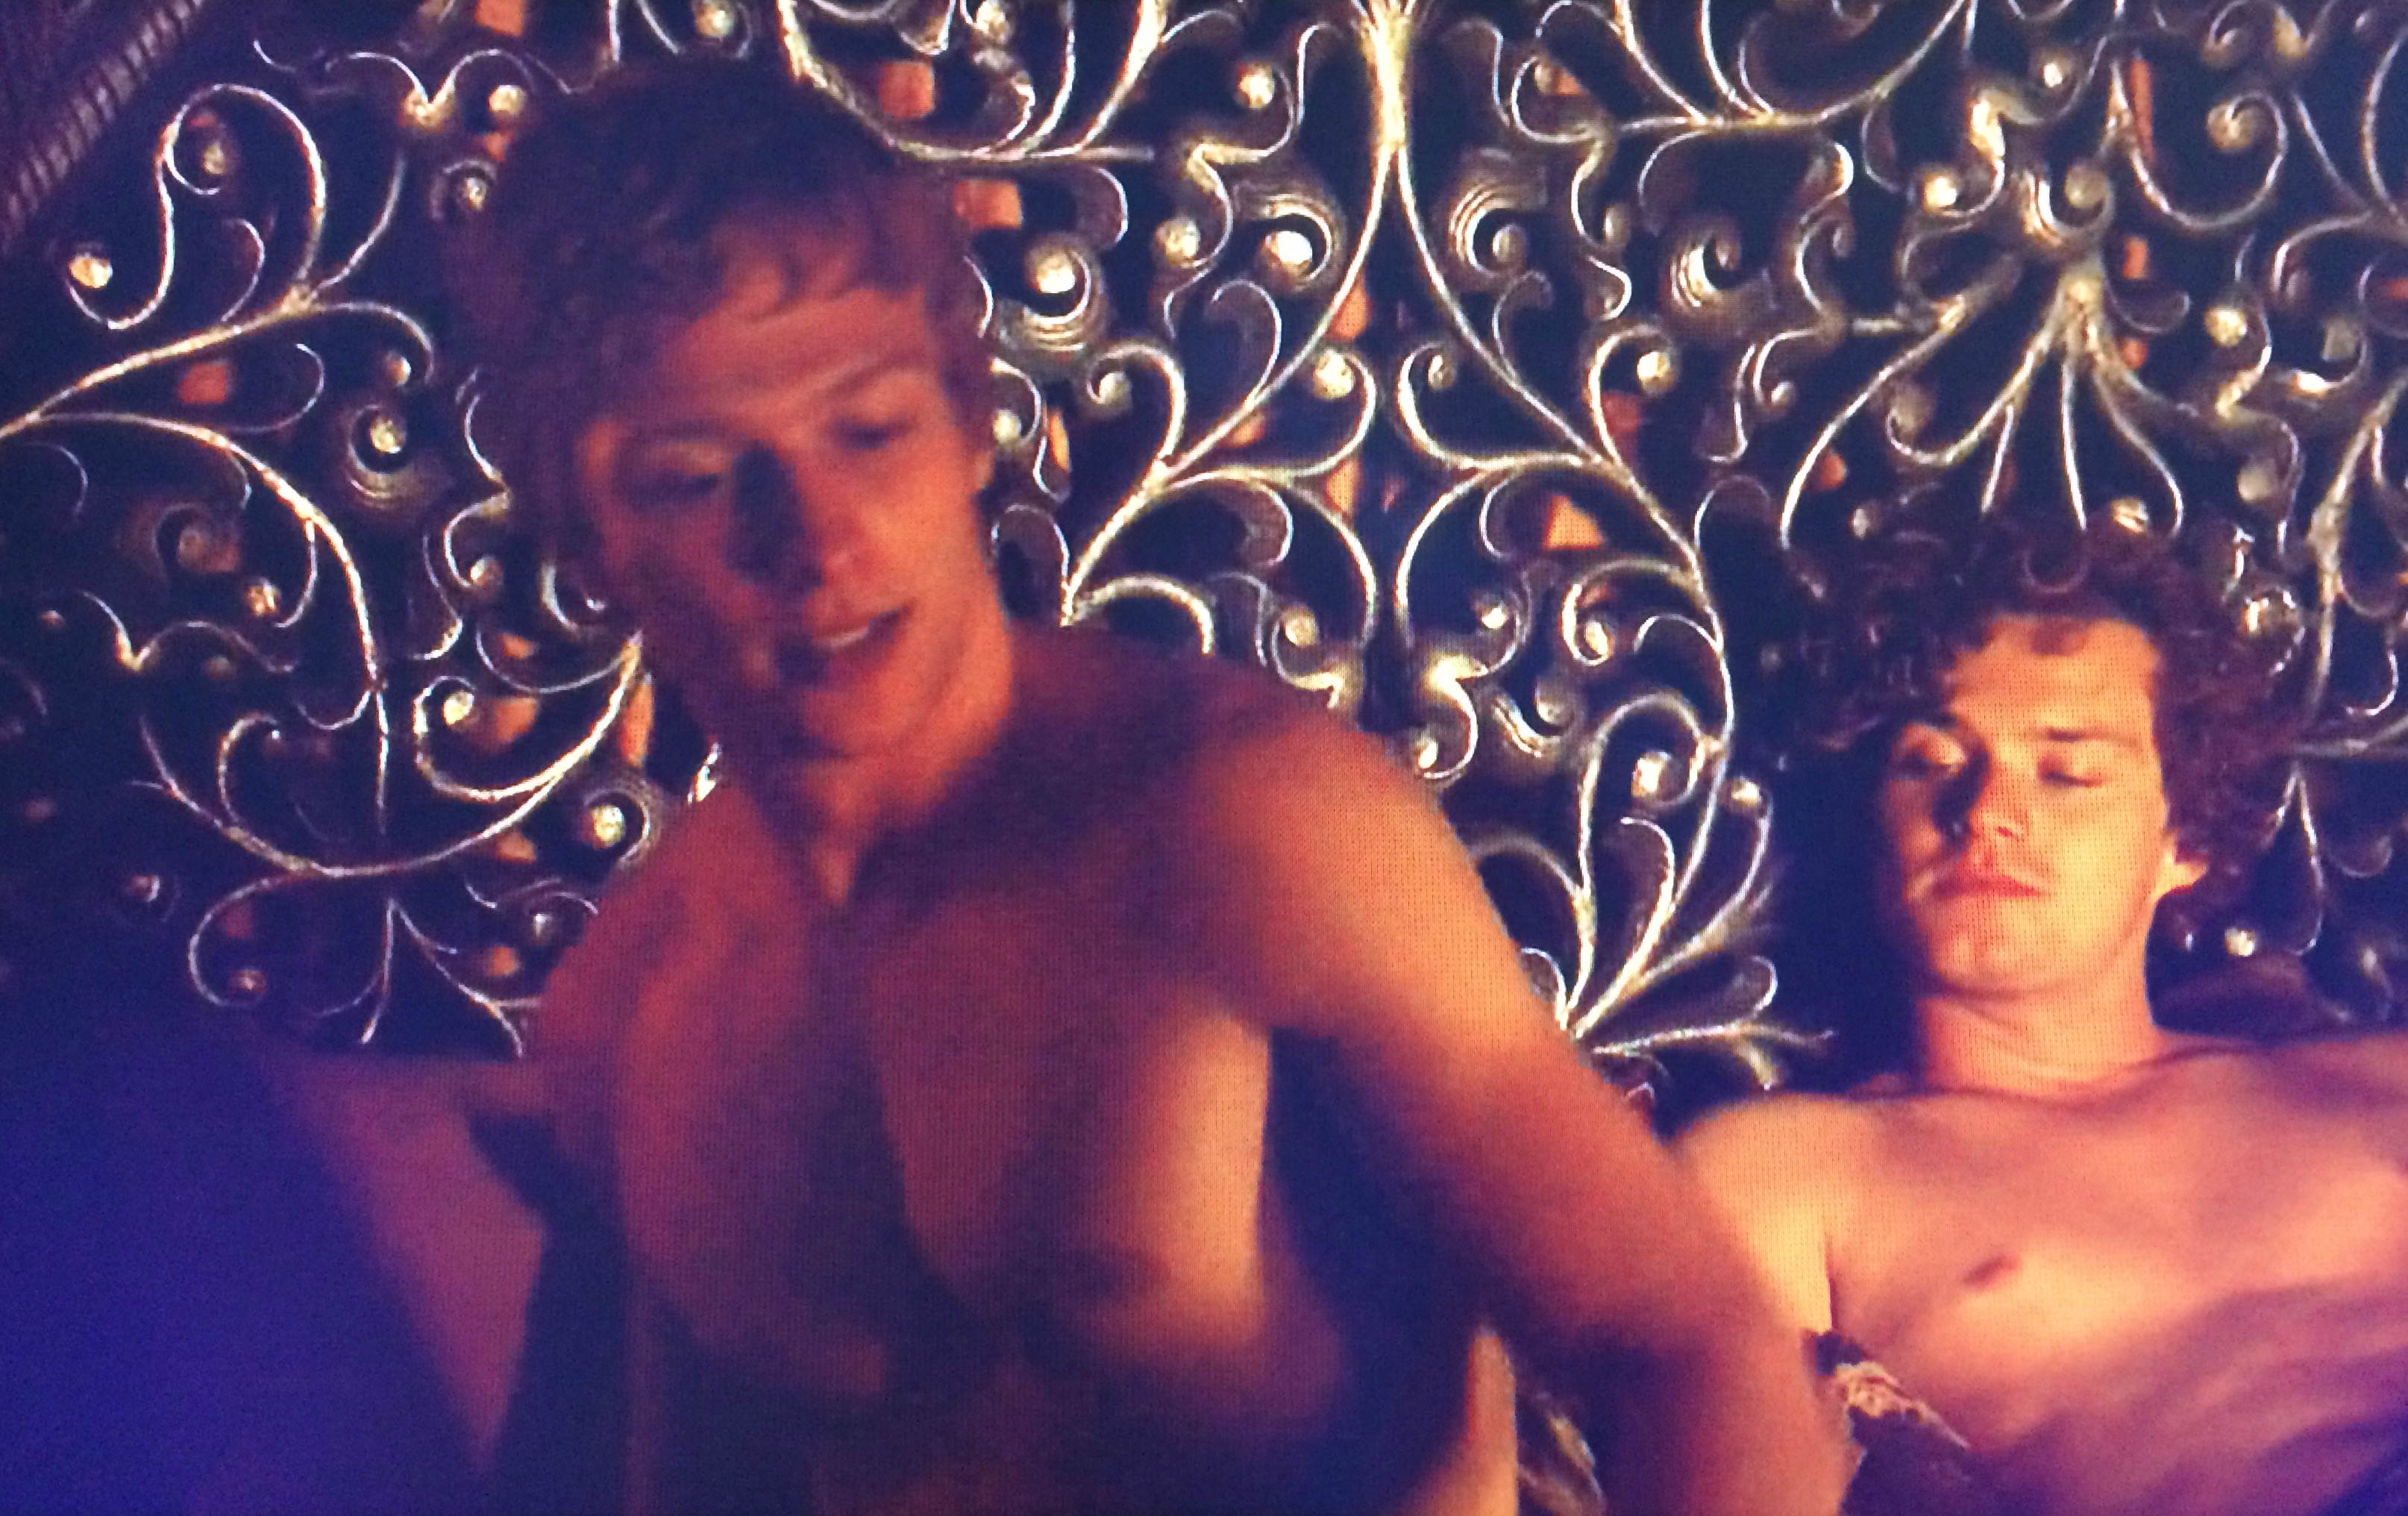 Loras Tyrell and Olyvar Game of Thrones nude bed